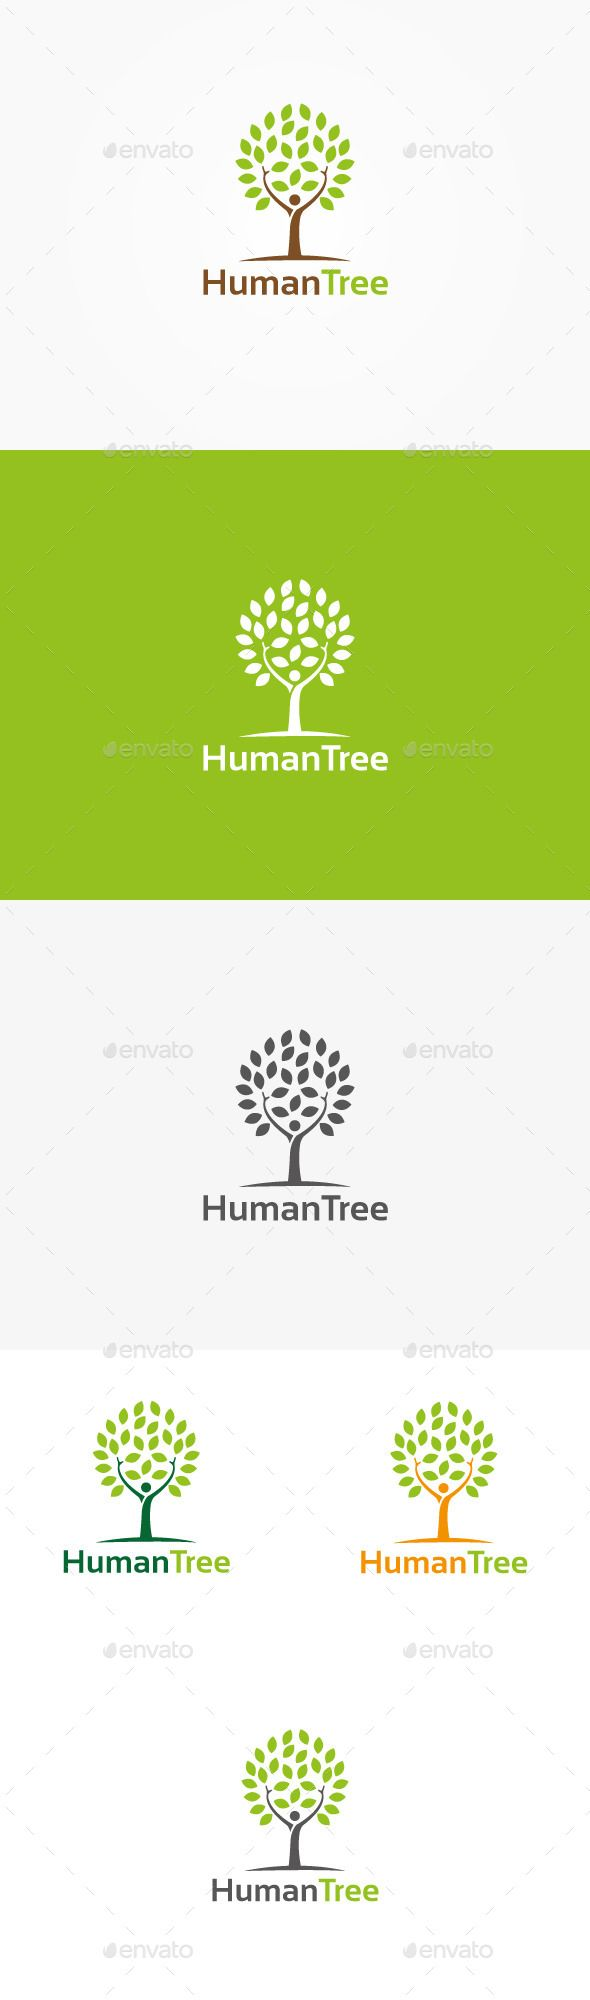 Tree logo design ideas